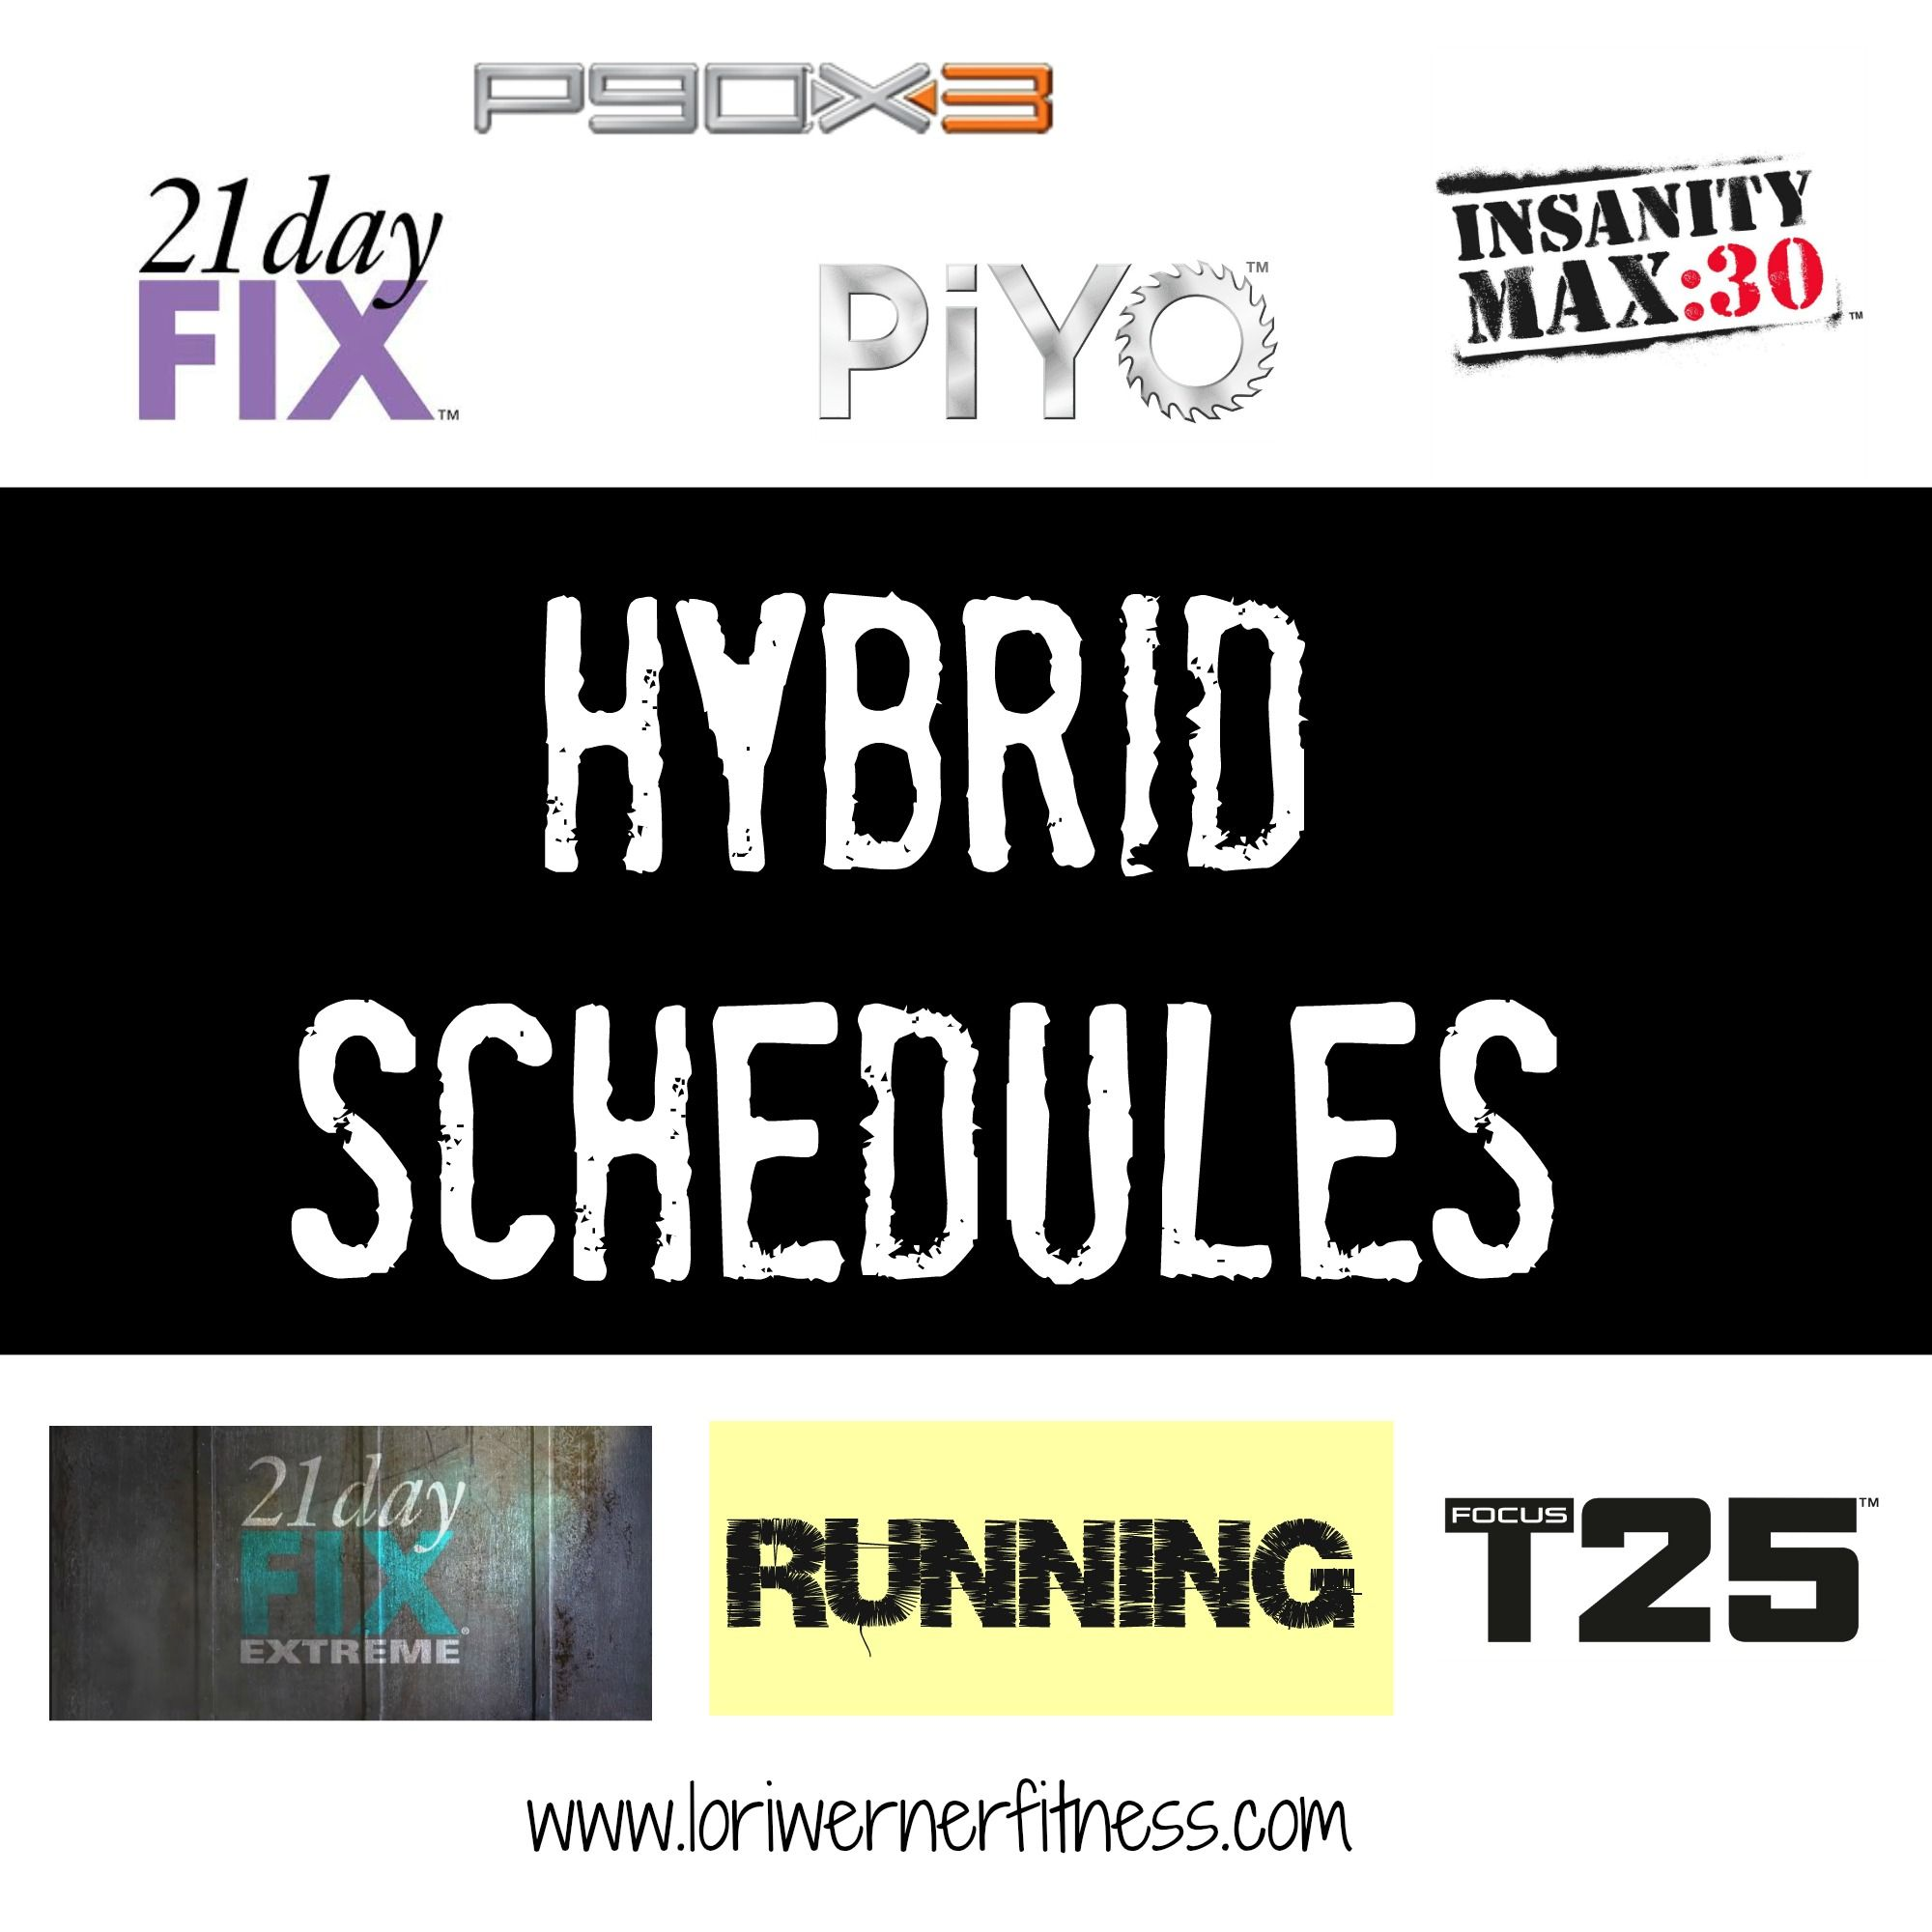 Beachbody Hybrid Workout Schedules Looking To Change Up